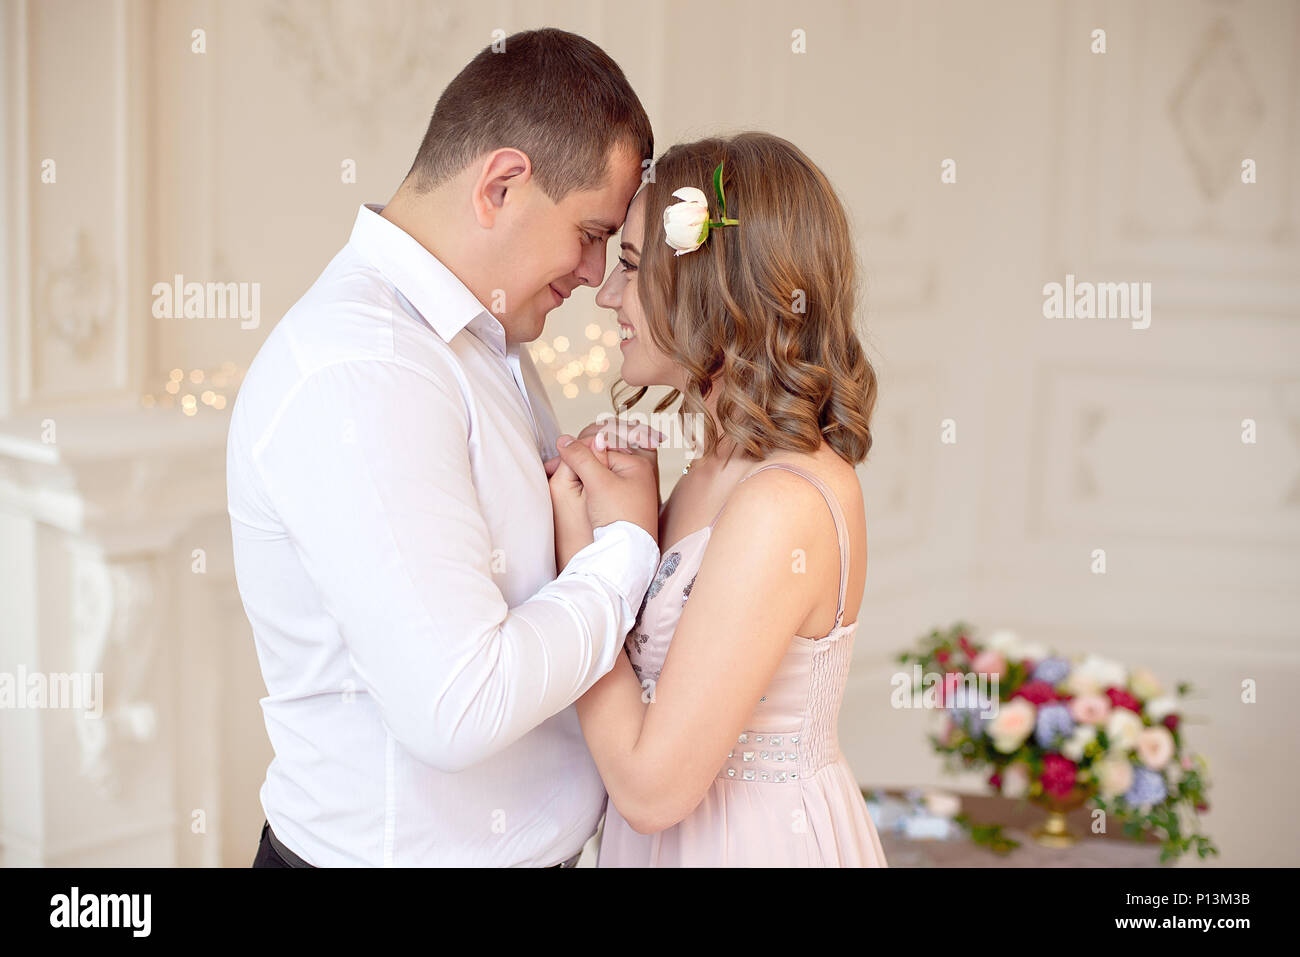 close-up young happy couple kissing in white room. - Stock Image